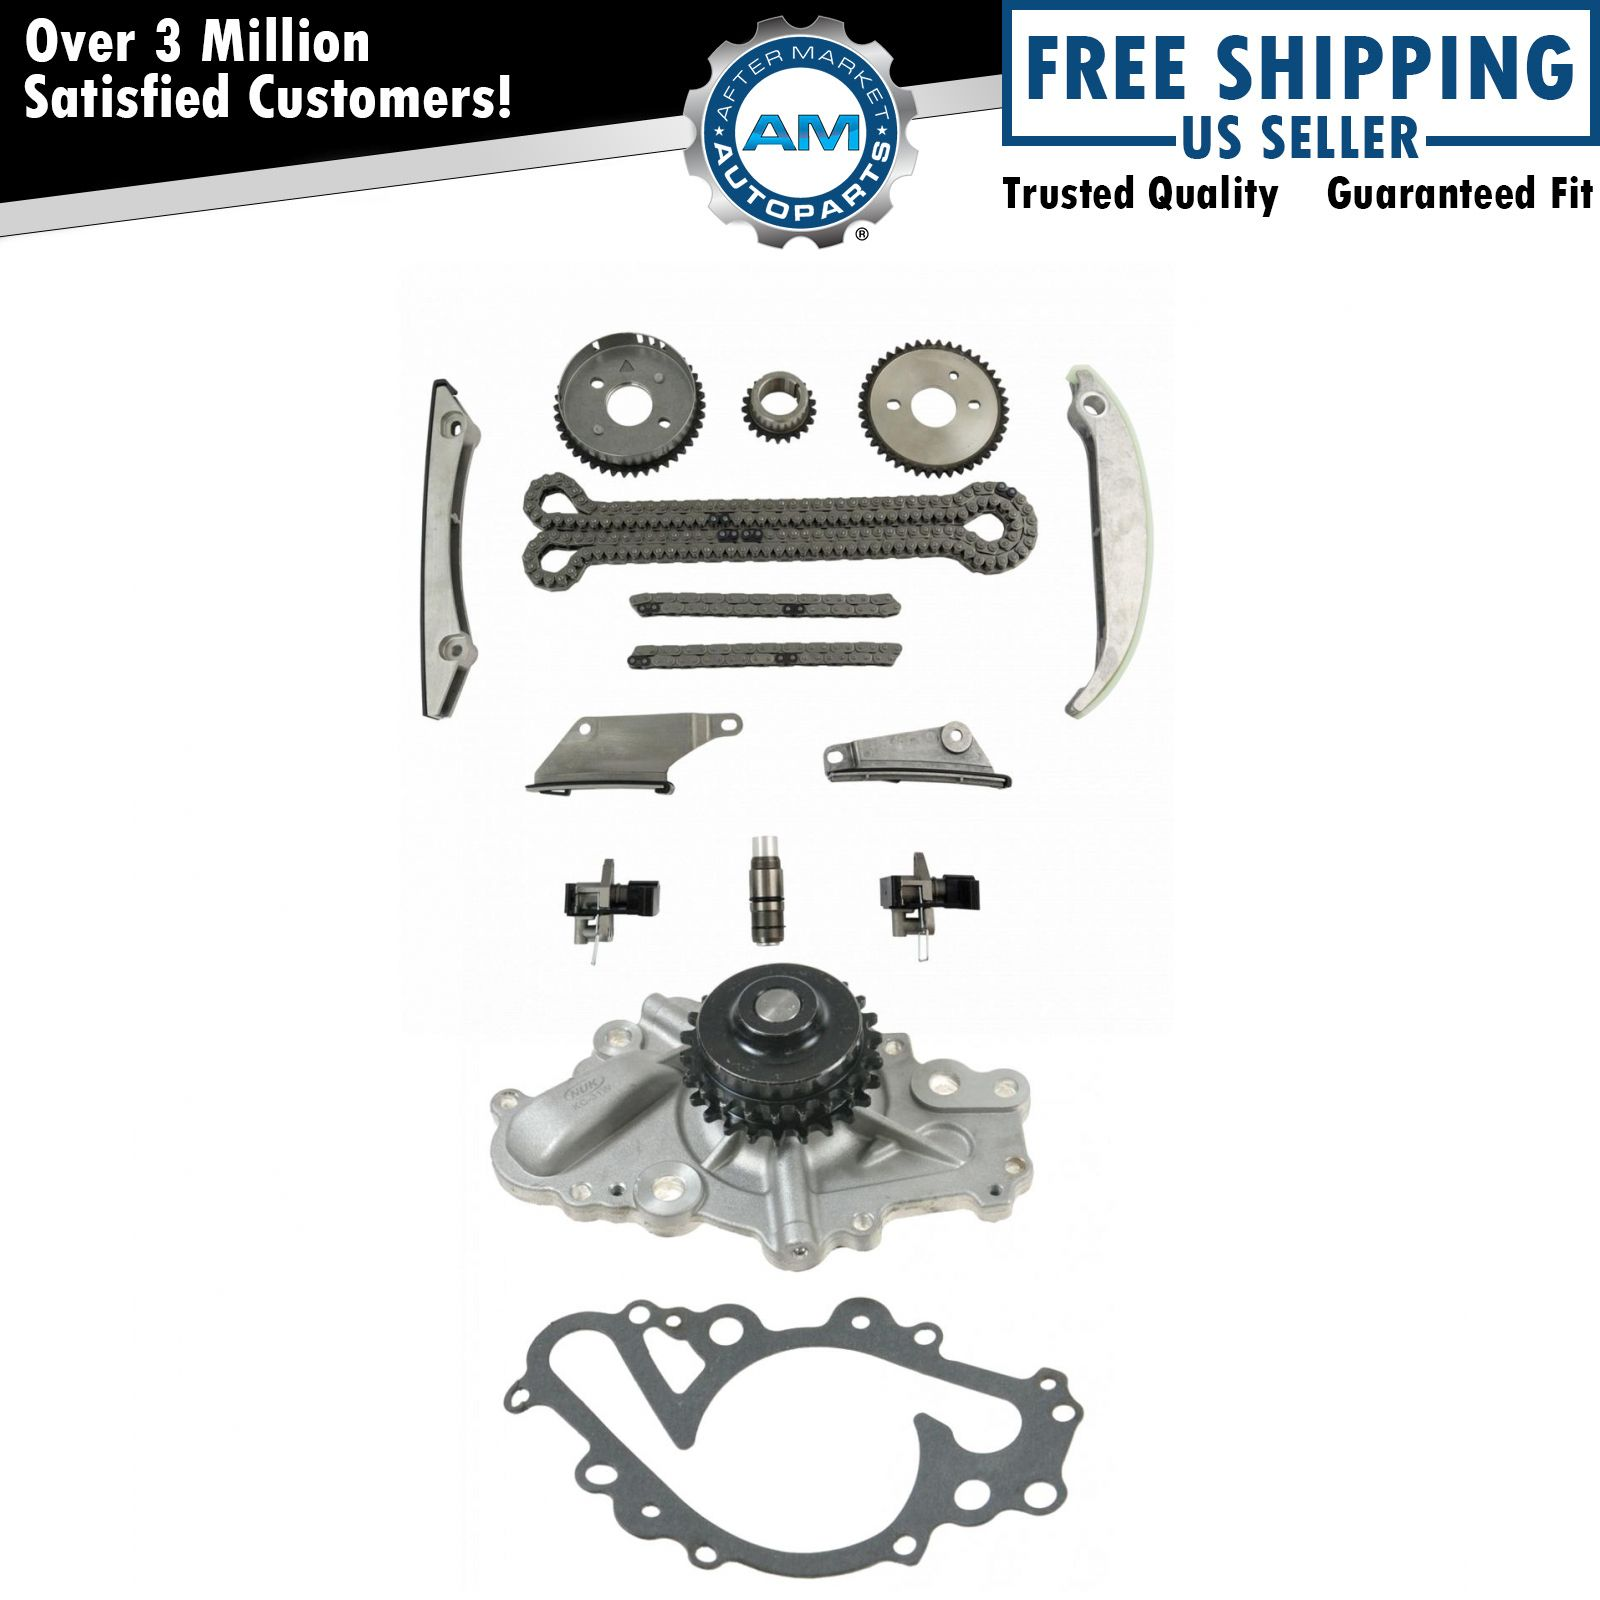 Complete Timing Chain Component Set W Water Pump For Dodge Chrysler 2 7l V6